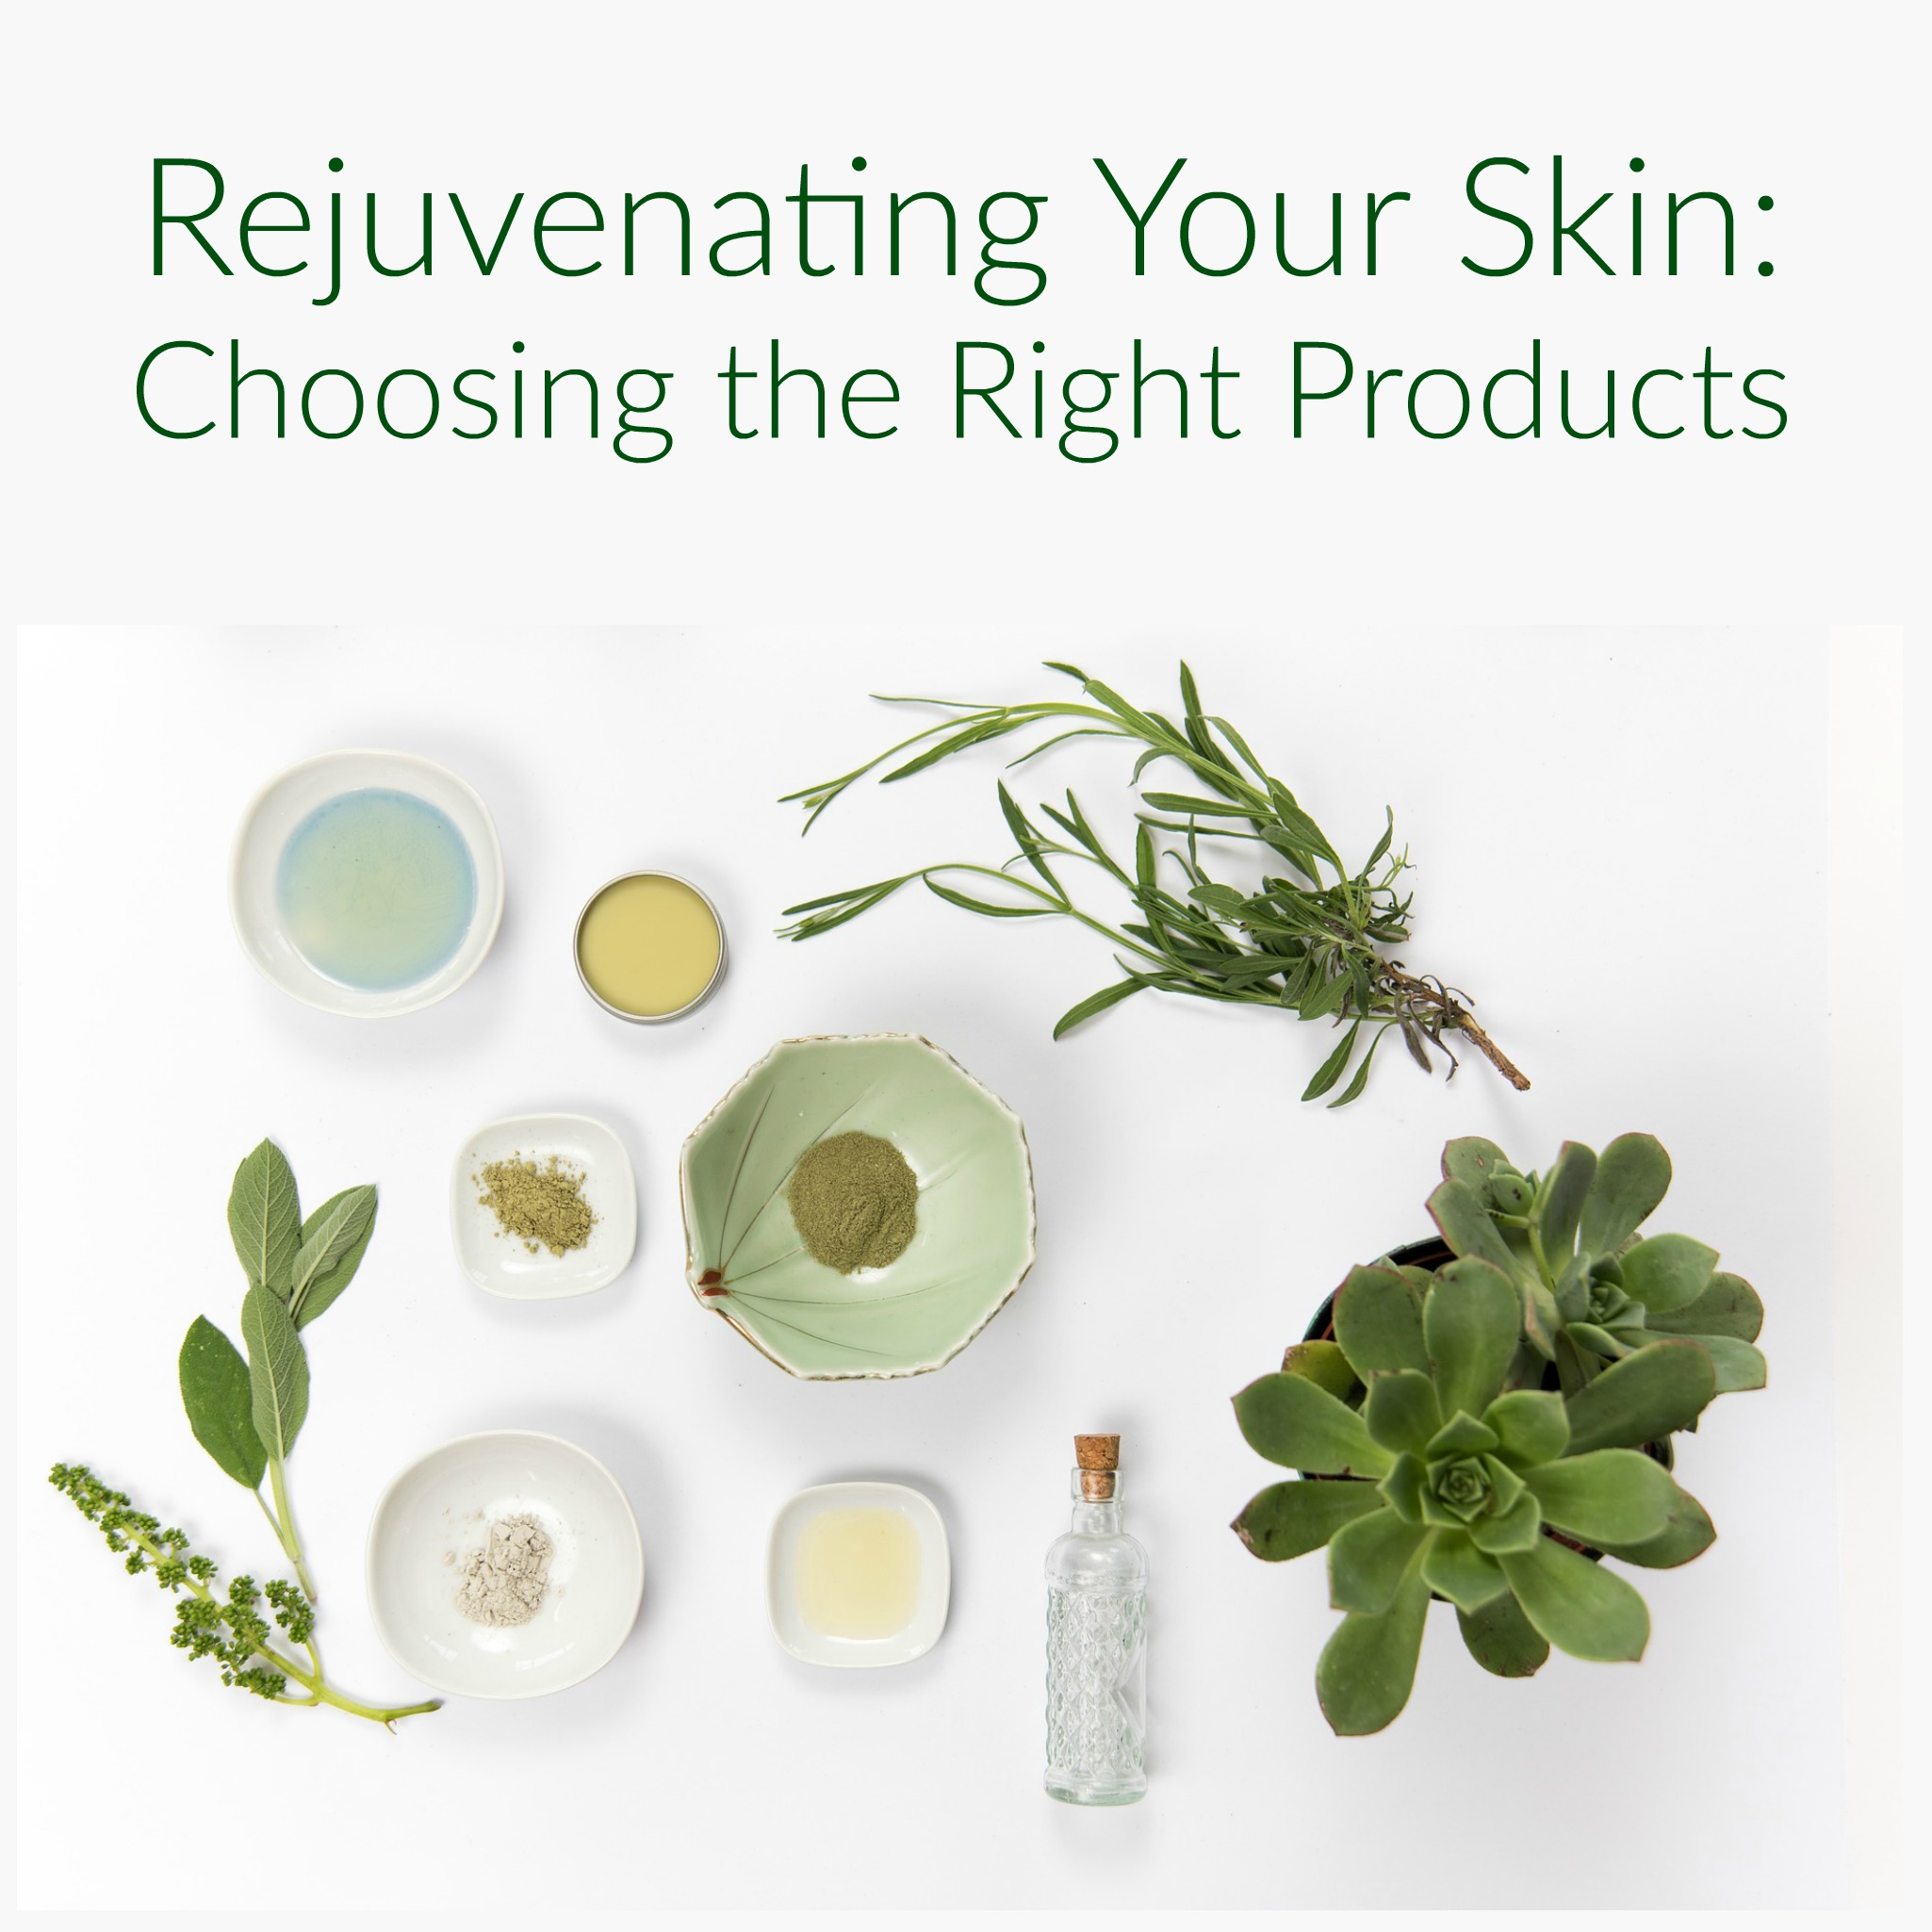 Rejuvenating Your Skin